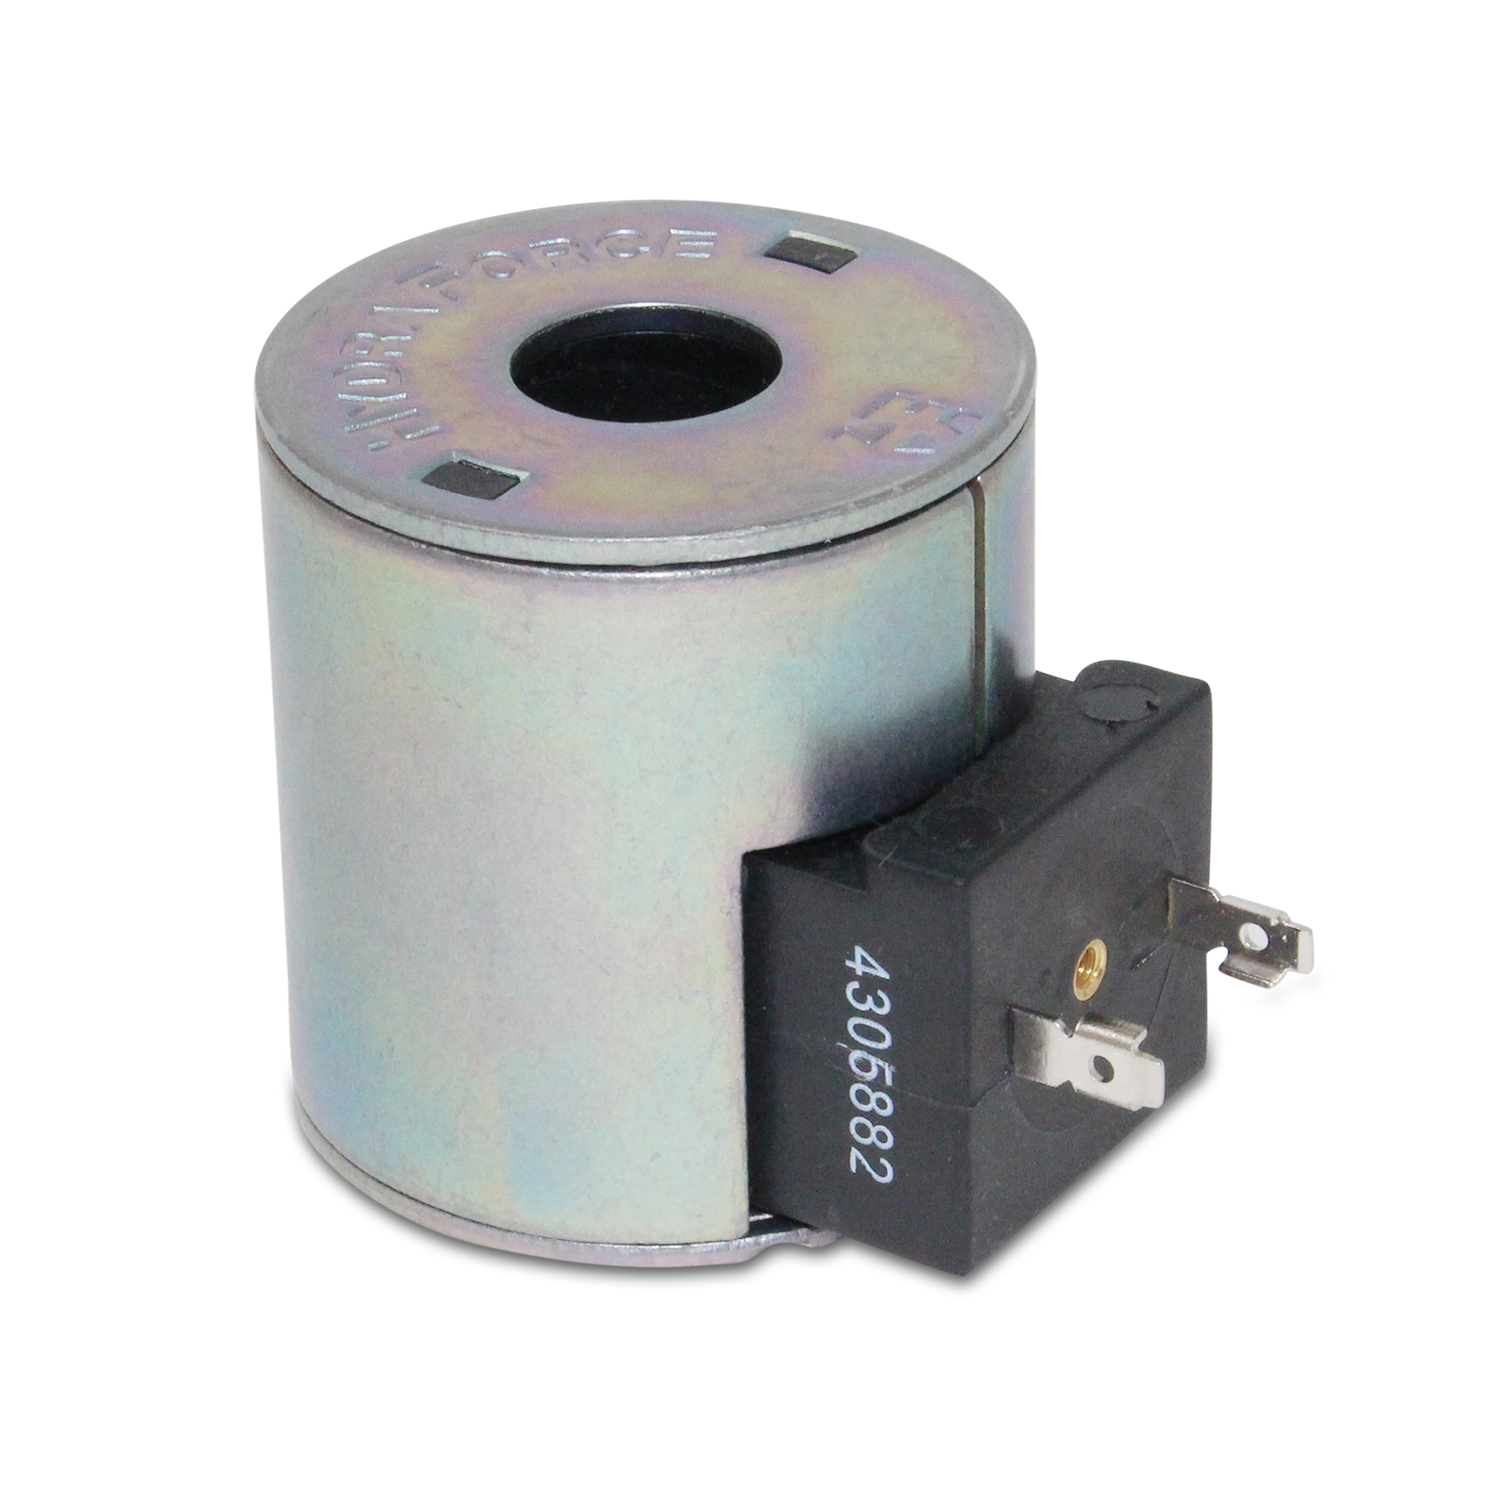 Hydraforce 4305882 Solenoid Valve Coil  3 Prong Din